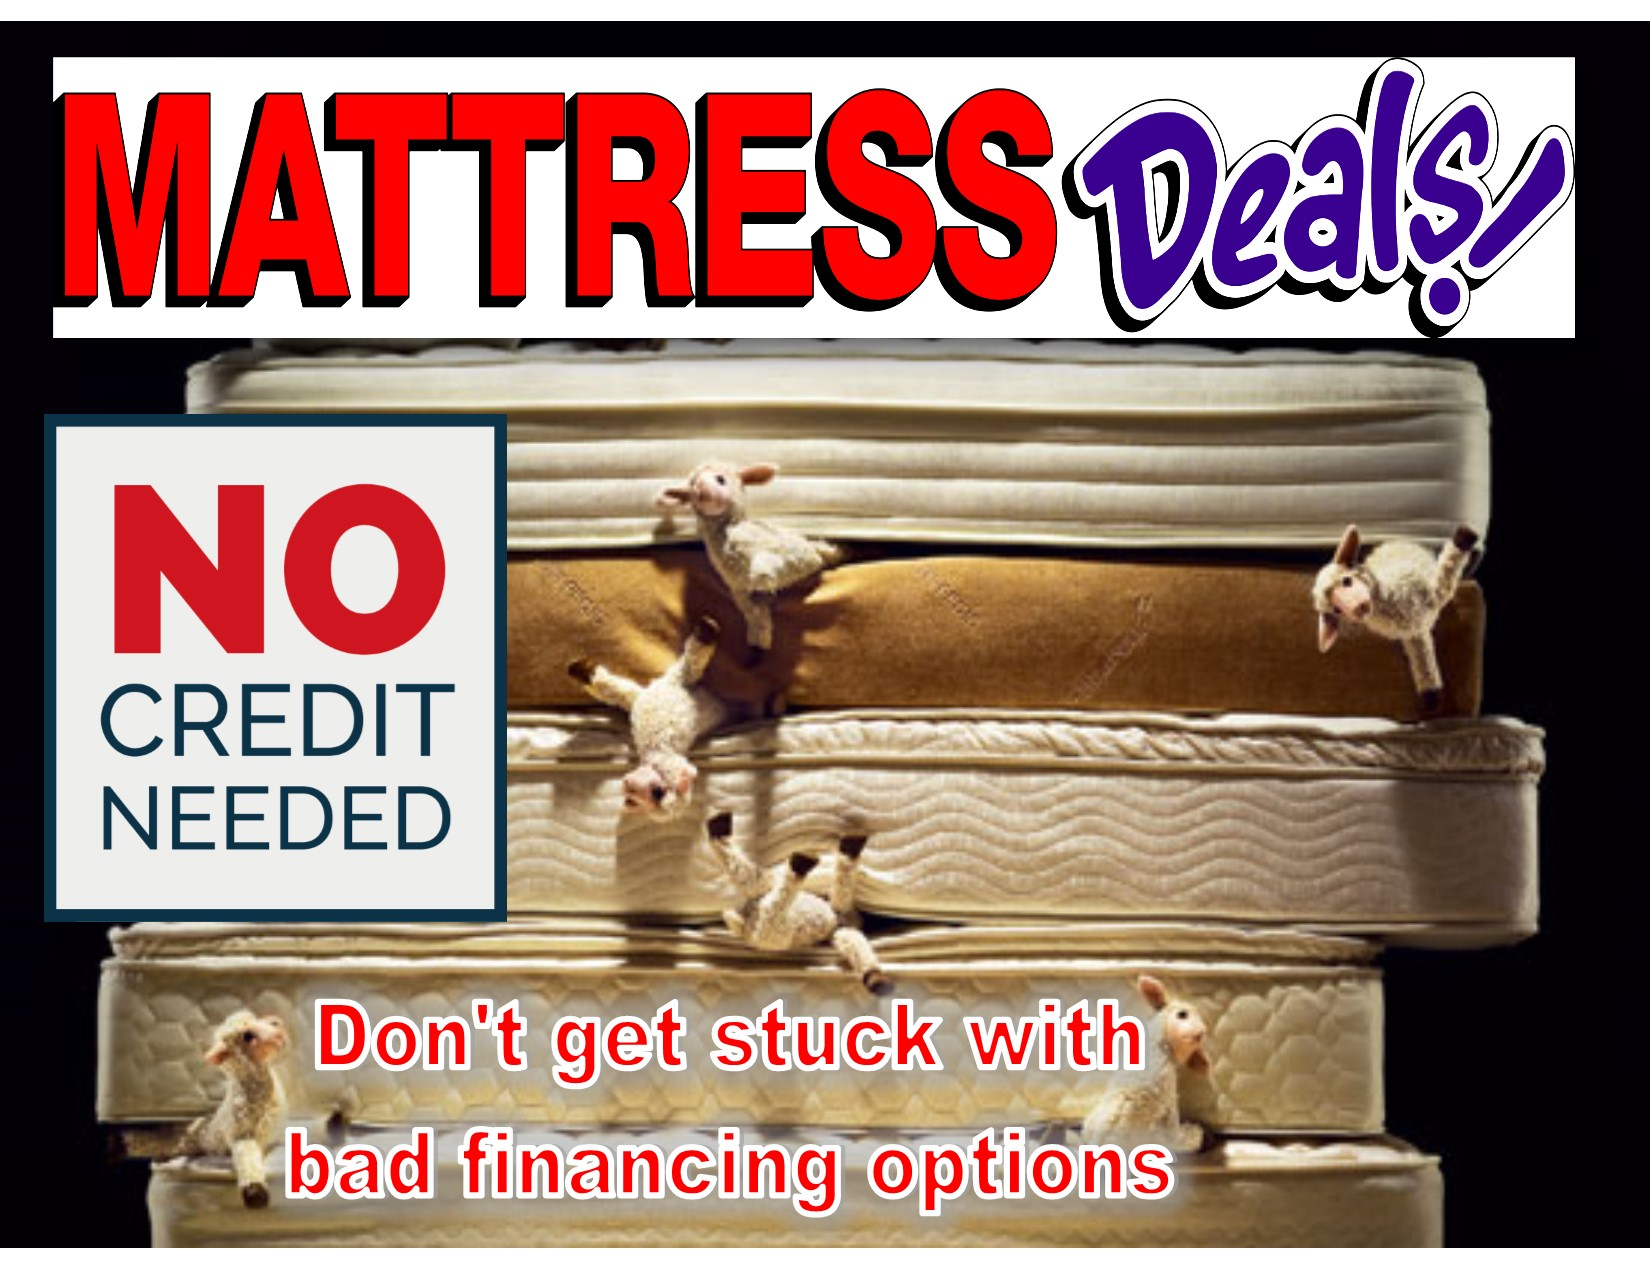 Mattress Deals image 22